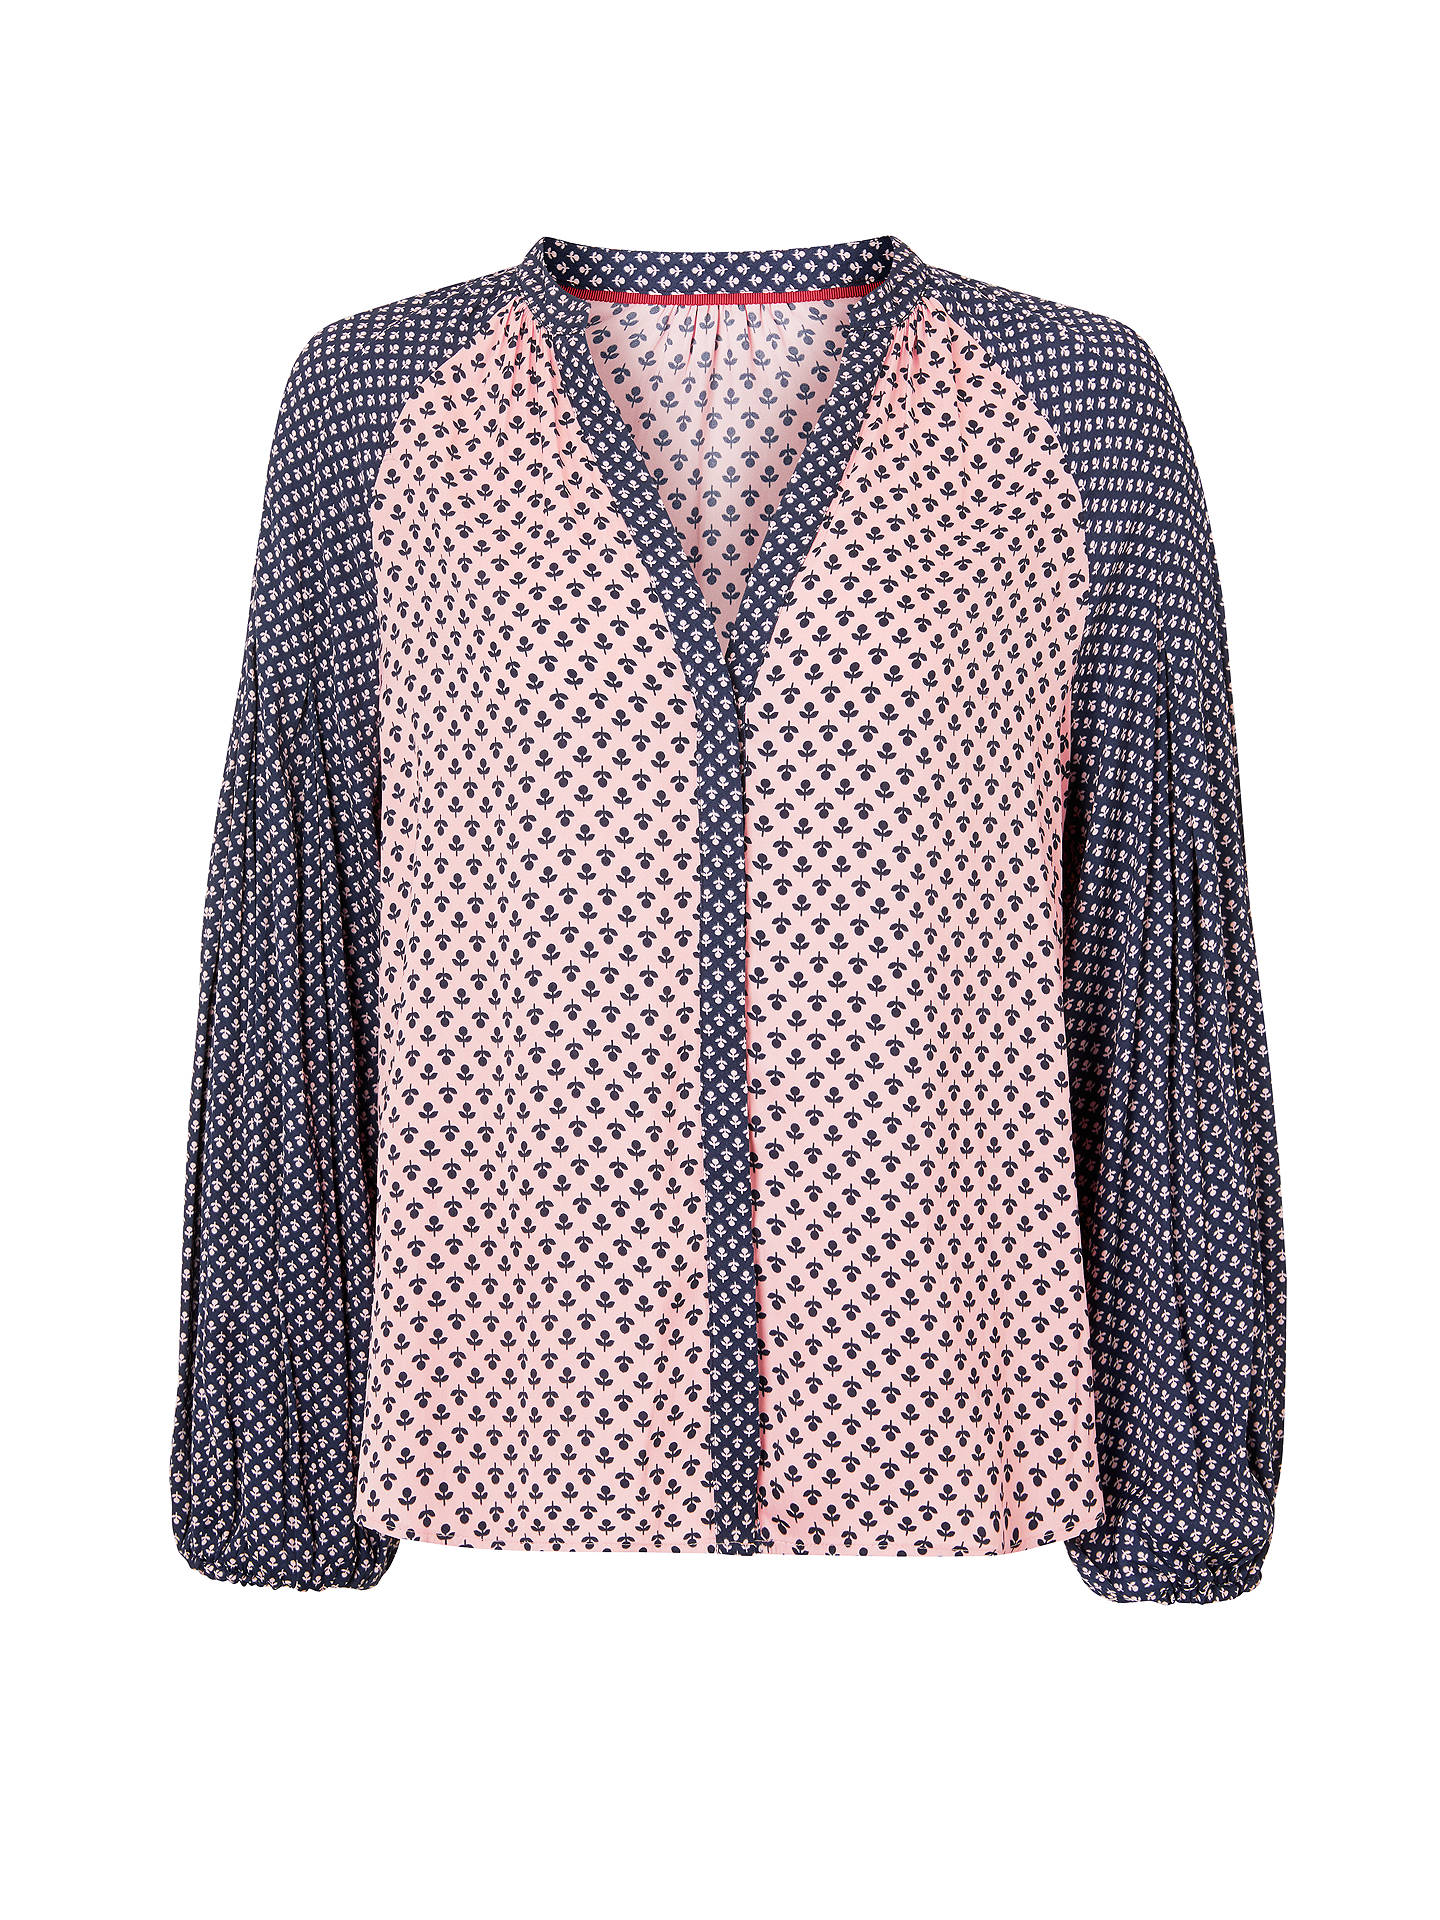 BuyBoden Harriet Blouse, Navy/Multi, 8 Online at johnlewis.com